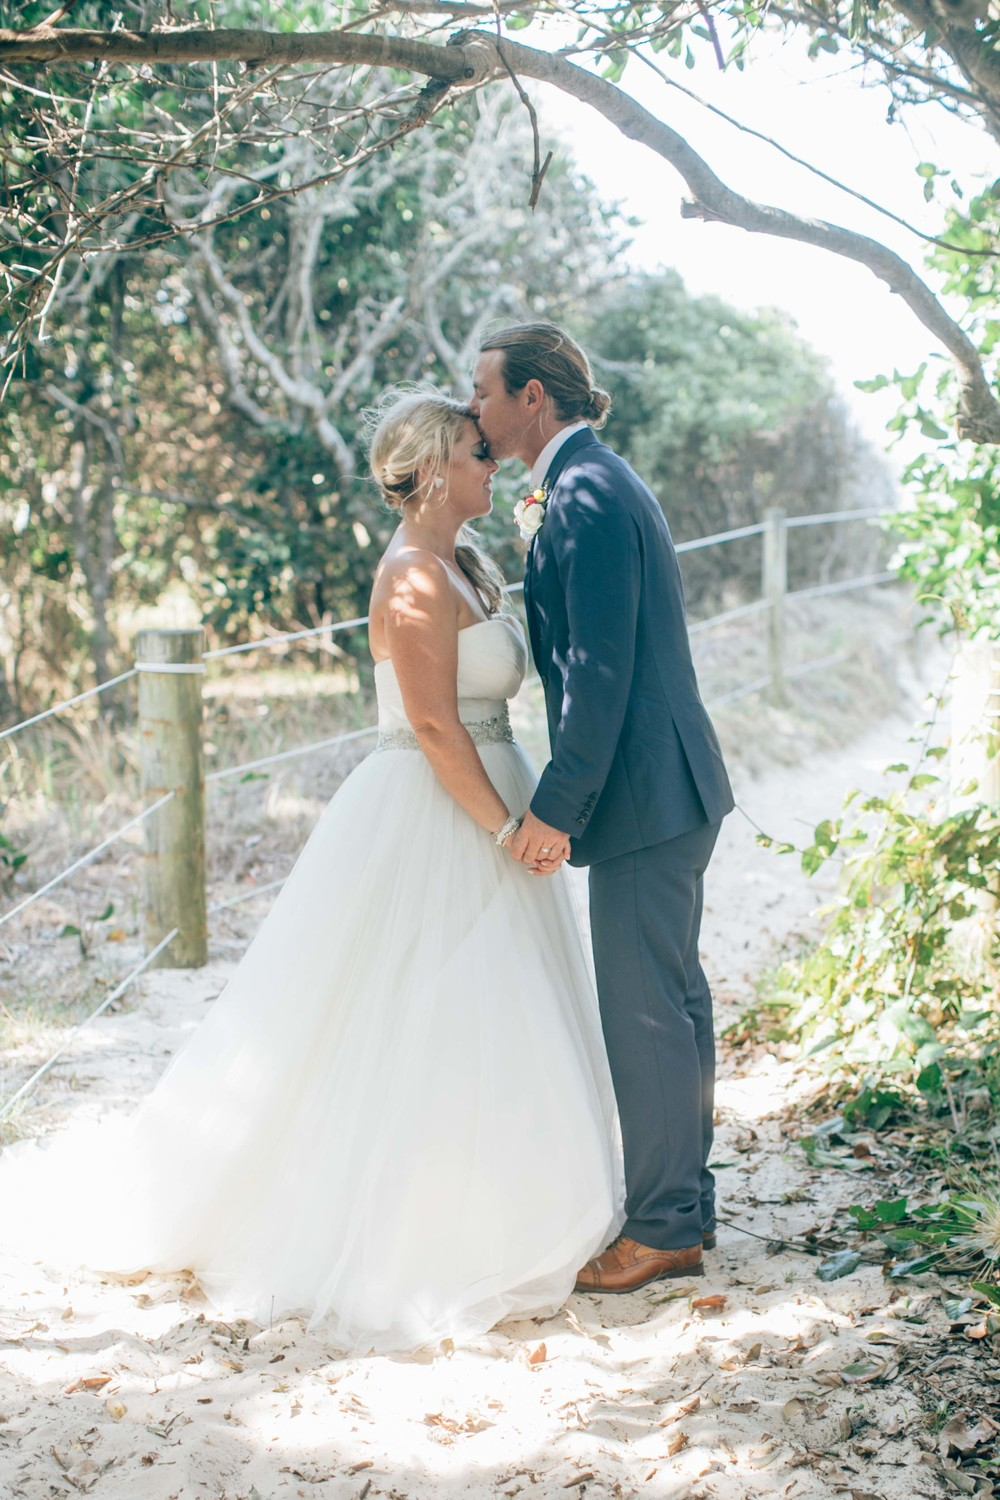 E&C Byron Bay Wedding Photography-88.jpg